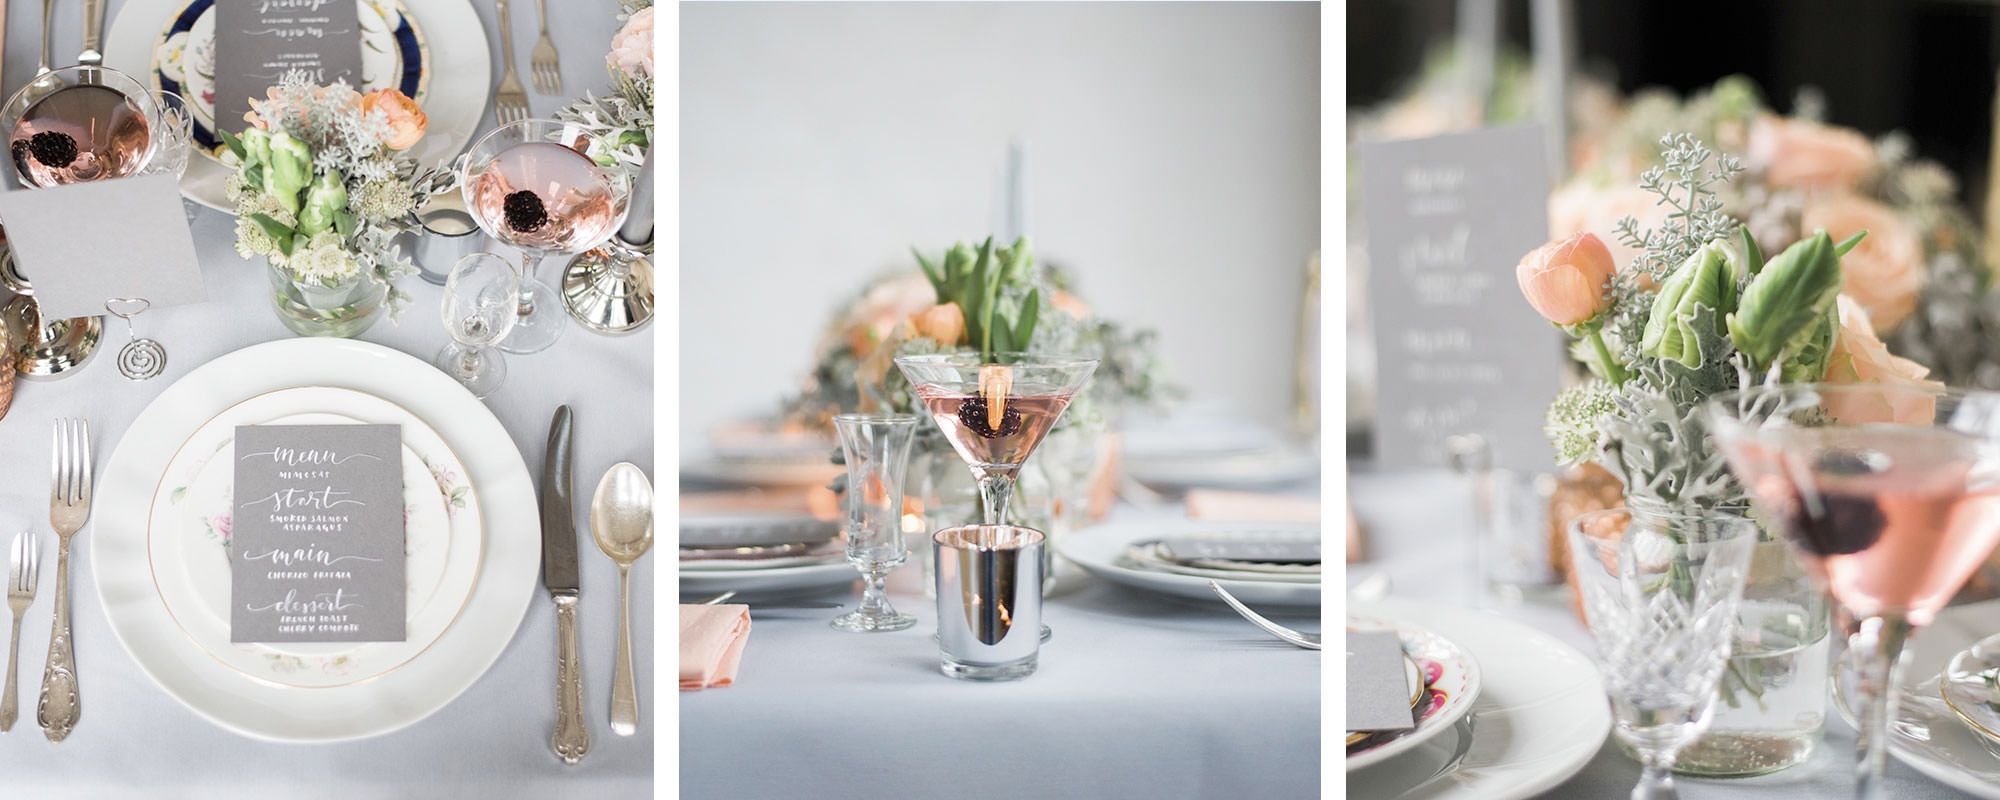 Kimberley Rose Designs offers planning and design uniquely tailored to ensure a seamless, beautiful wedding celebration. We plan and design country house weddings, chic city weddings, and destination weddings and cover London, Surrey, Kent, Sussex, Berkshire, and European destinations.